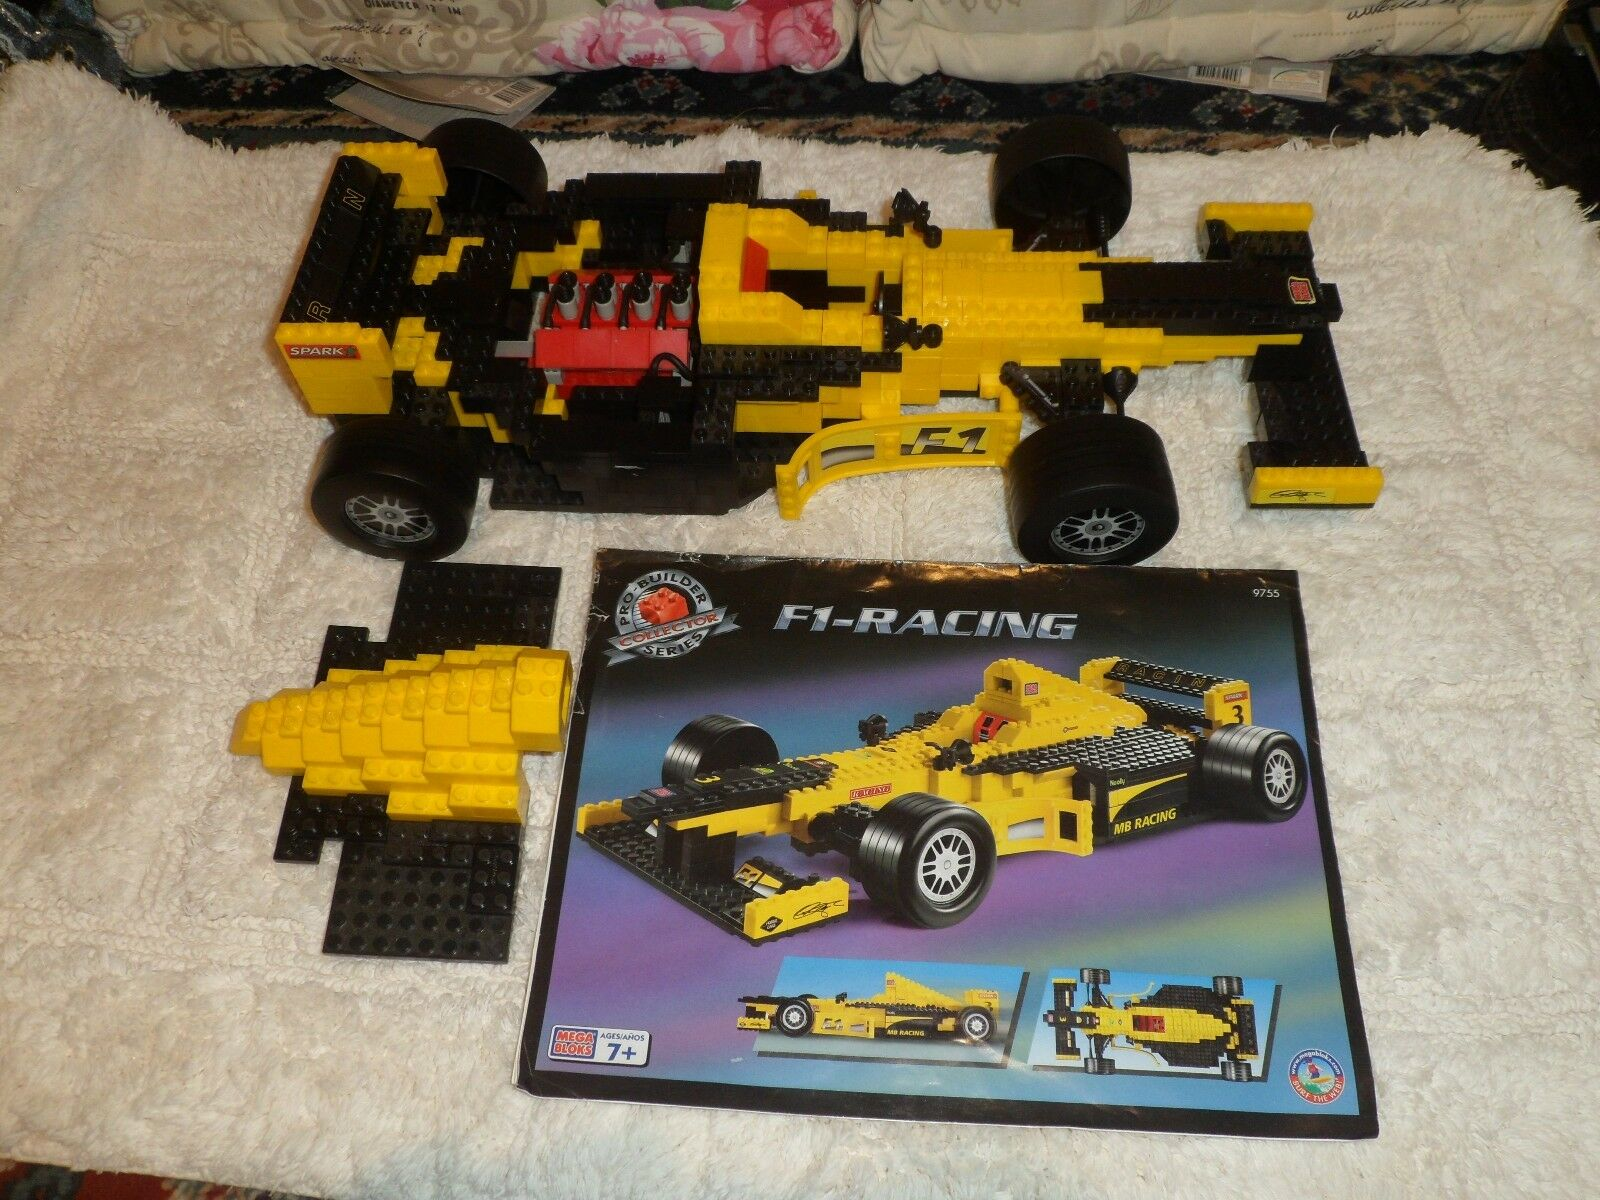 Rare, MEGA BLOKS PRO-BUILDER COLLECTOR SERIES-F1-RACING, 9755, from 1999, 7+